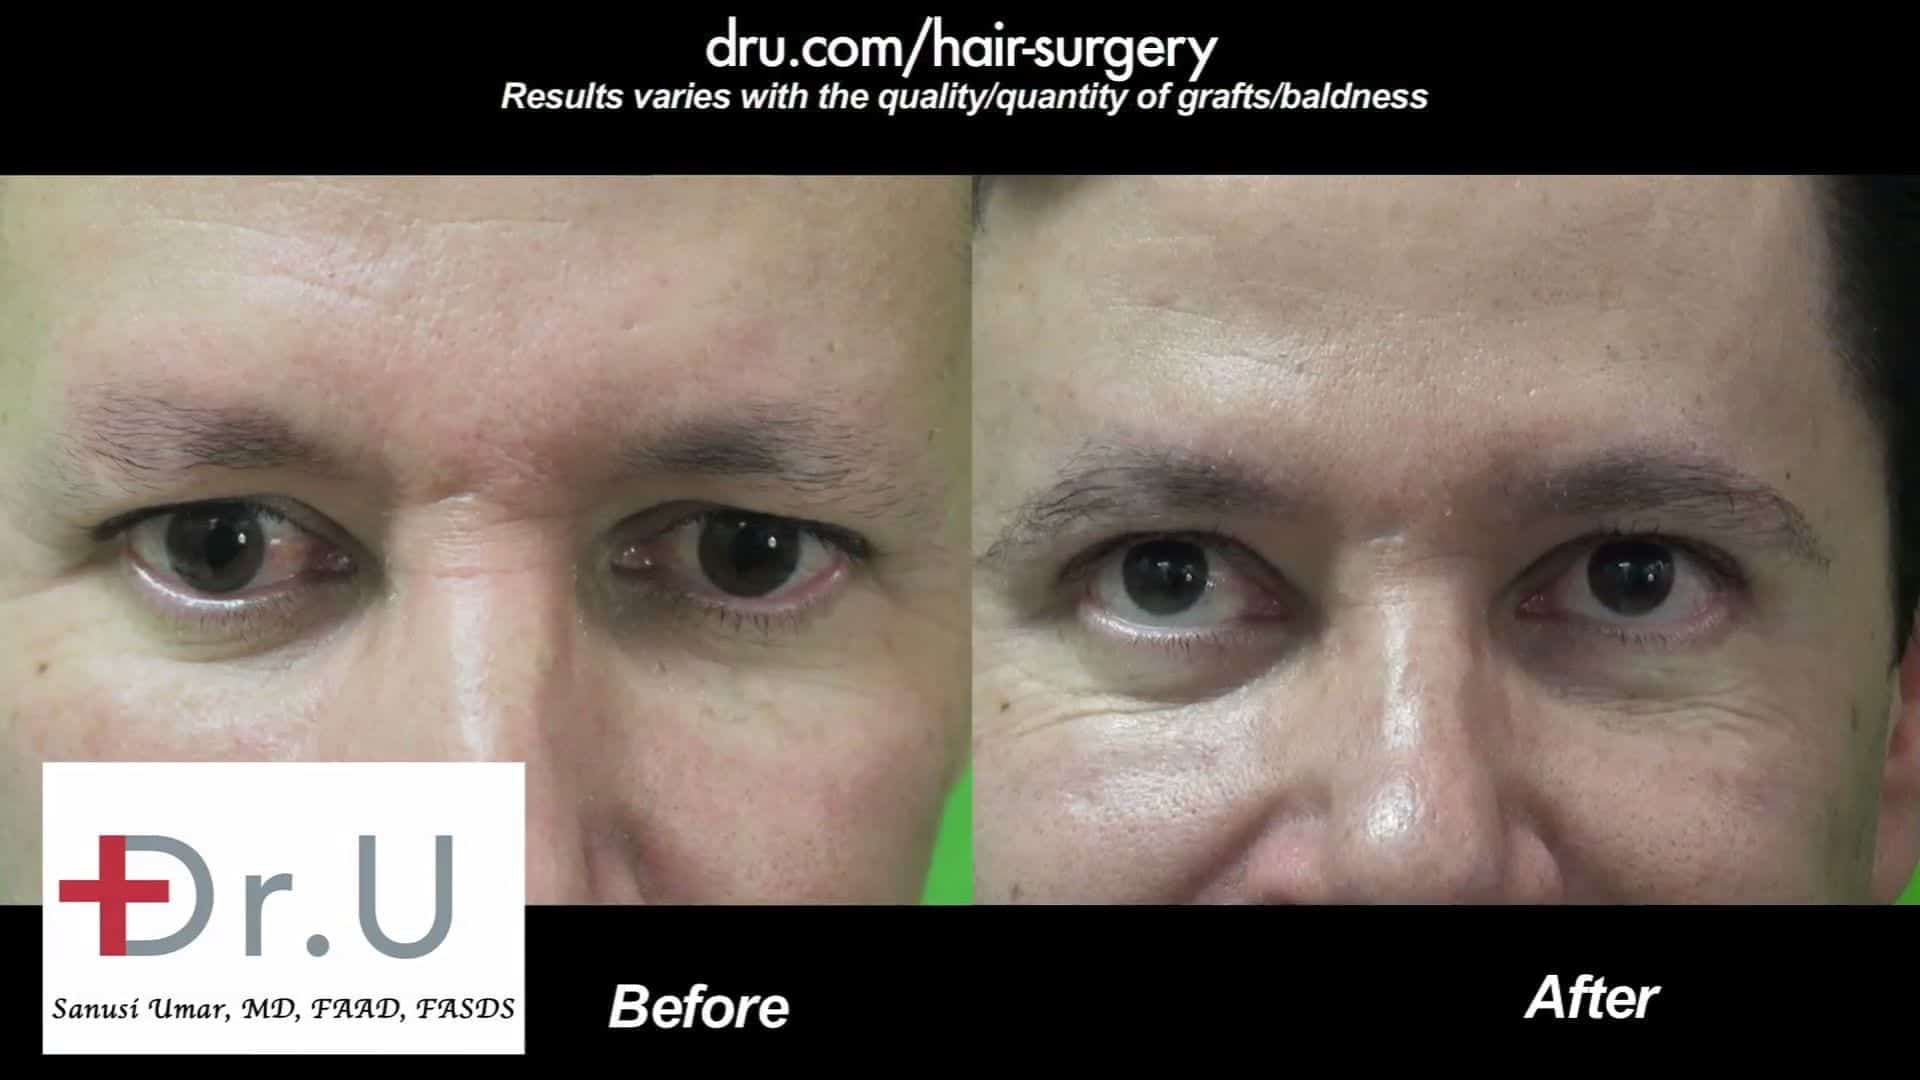 Eyebrow transplantation for men can greatly improve the way the eyes are framed as shown in these before and after photos